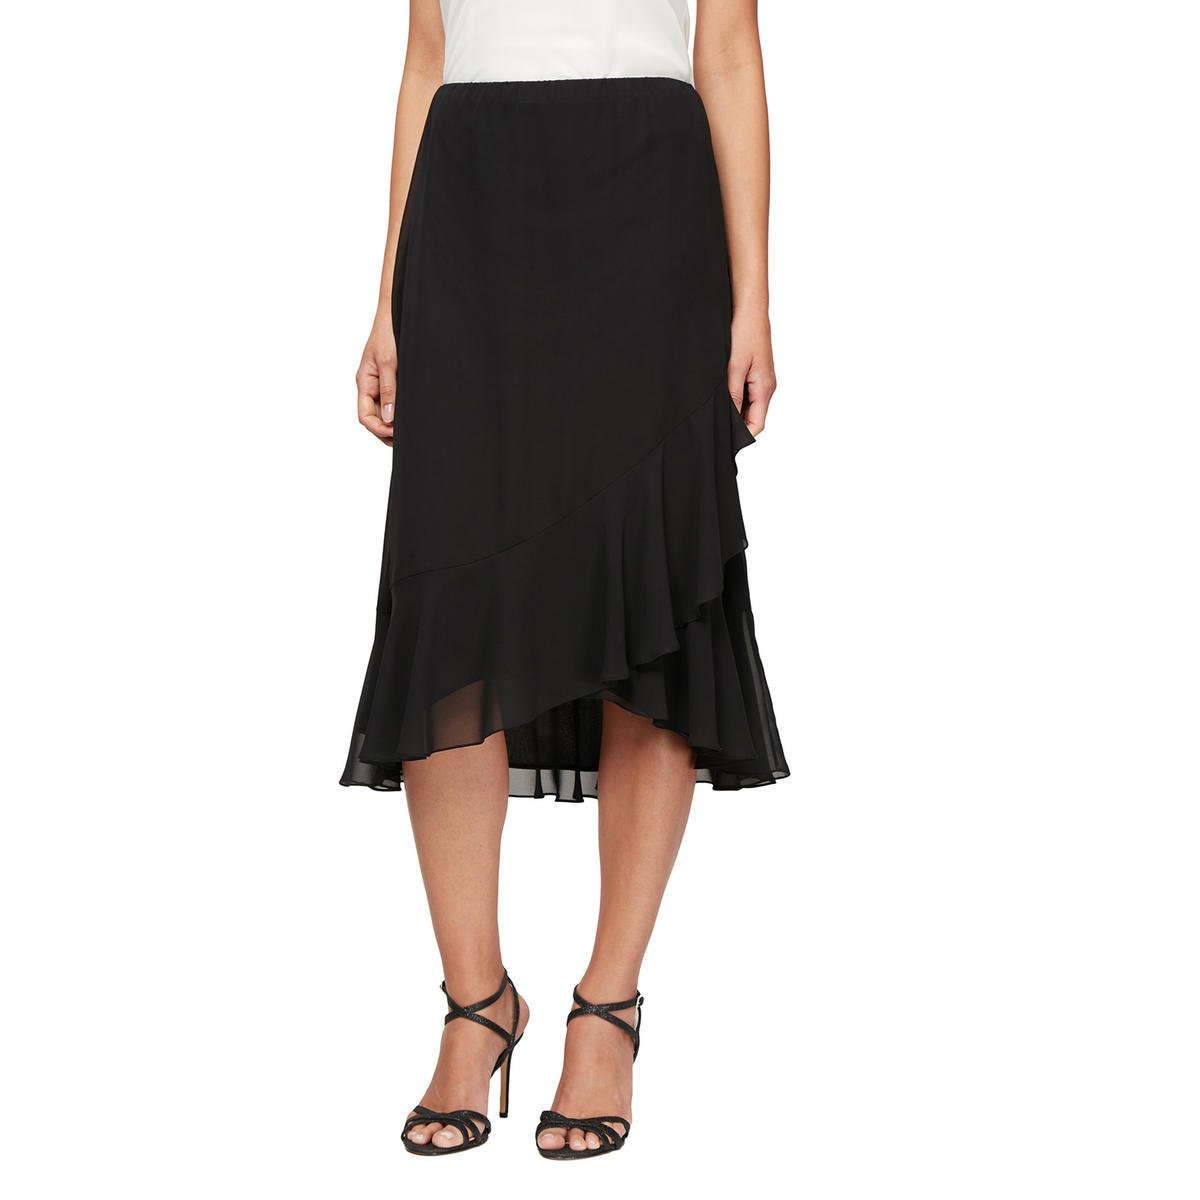 ALEX APPAREL GROUP INC - Flared Chiffon Skirt